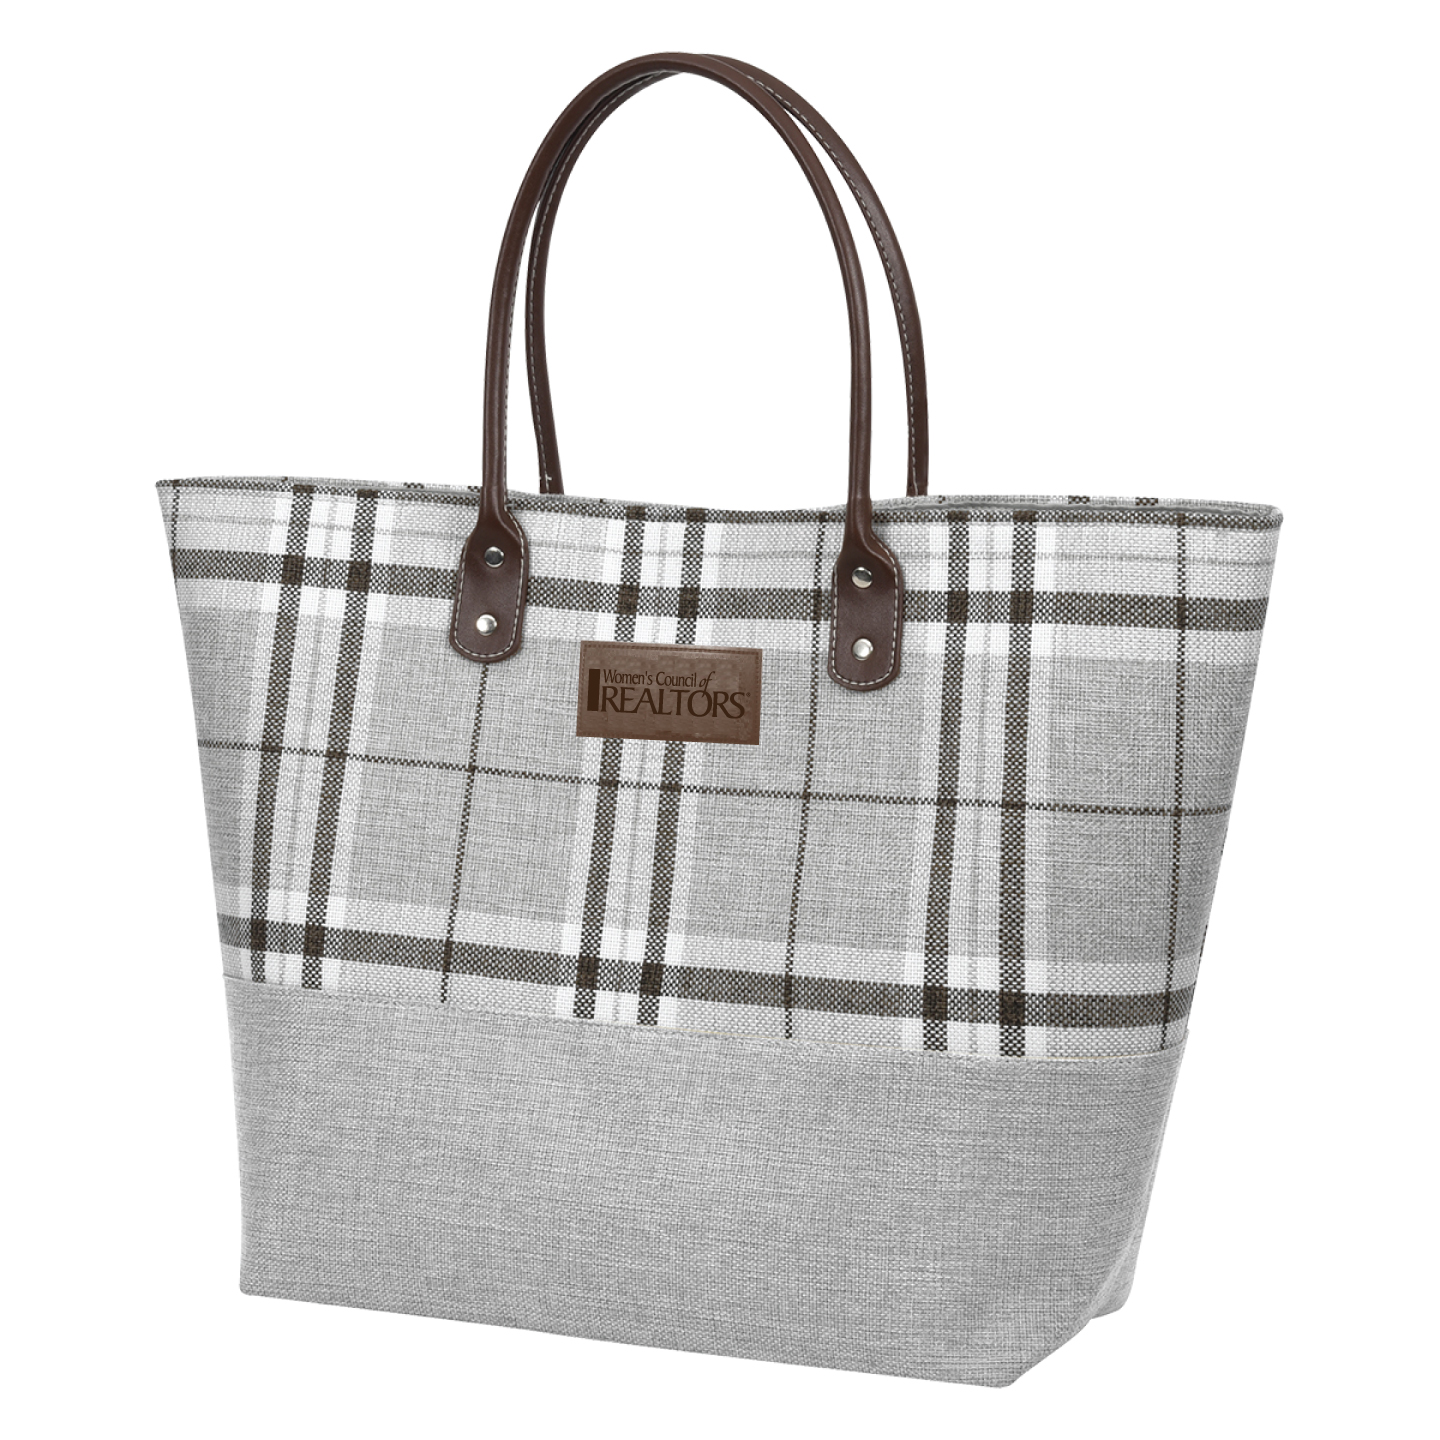 Tartan Tote  Bag, Tote, Purse, Gift, Installment, President. Grocery,